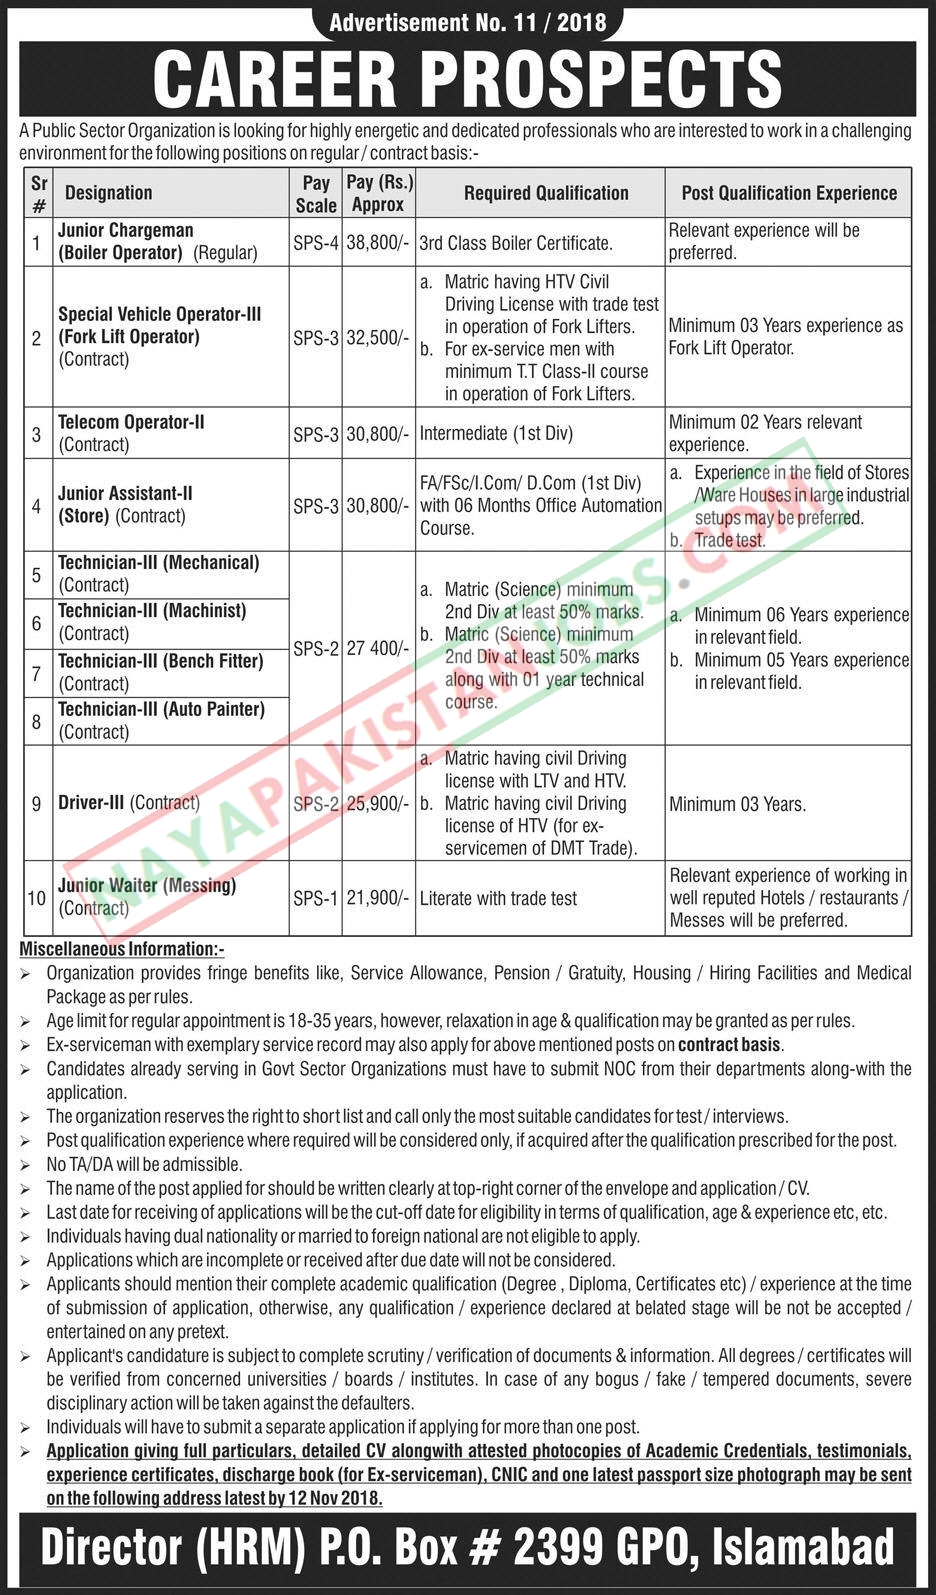 Latest Vacancies Announced in Public Sector Organization Islamabad 28 October 2018 - Naya Pakistan